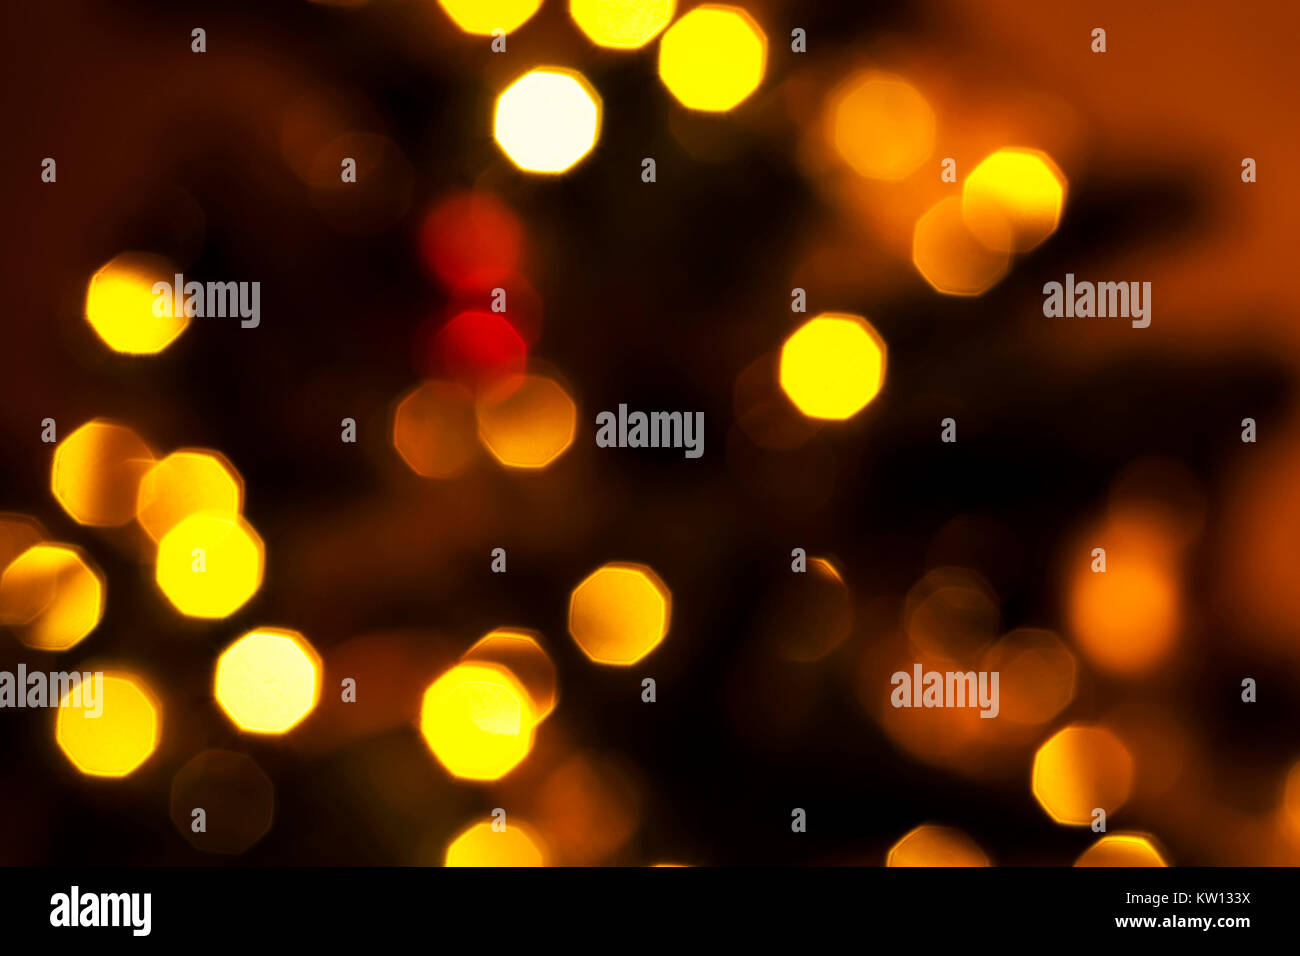 Colorful bokeh. Creative image of bright lights. Blurred background. - Stock Image